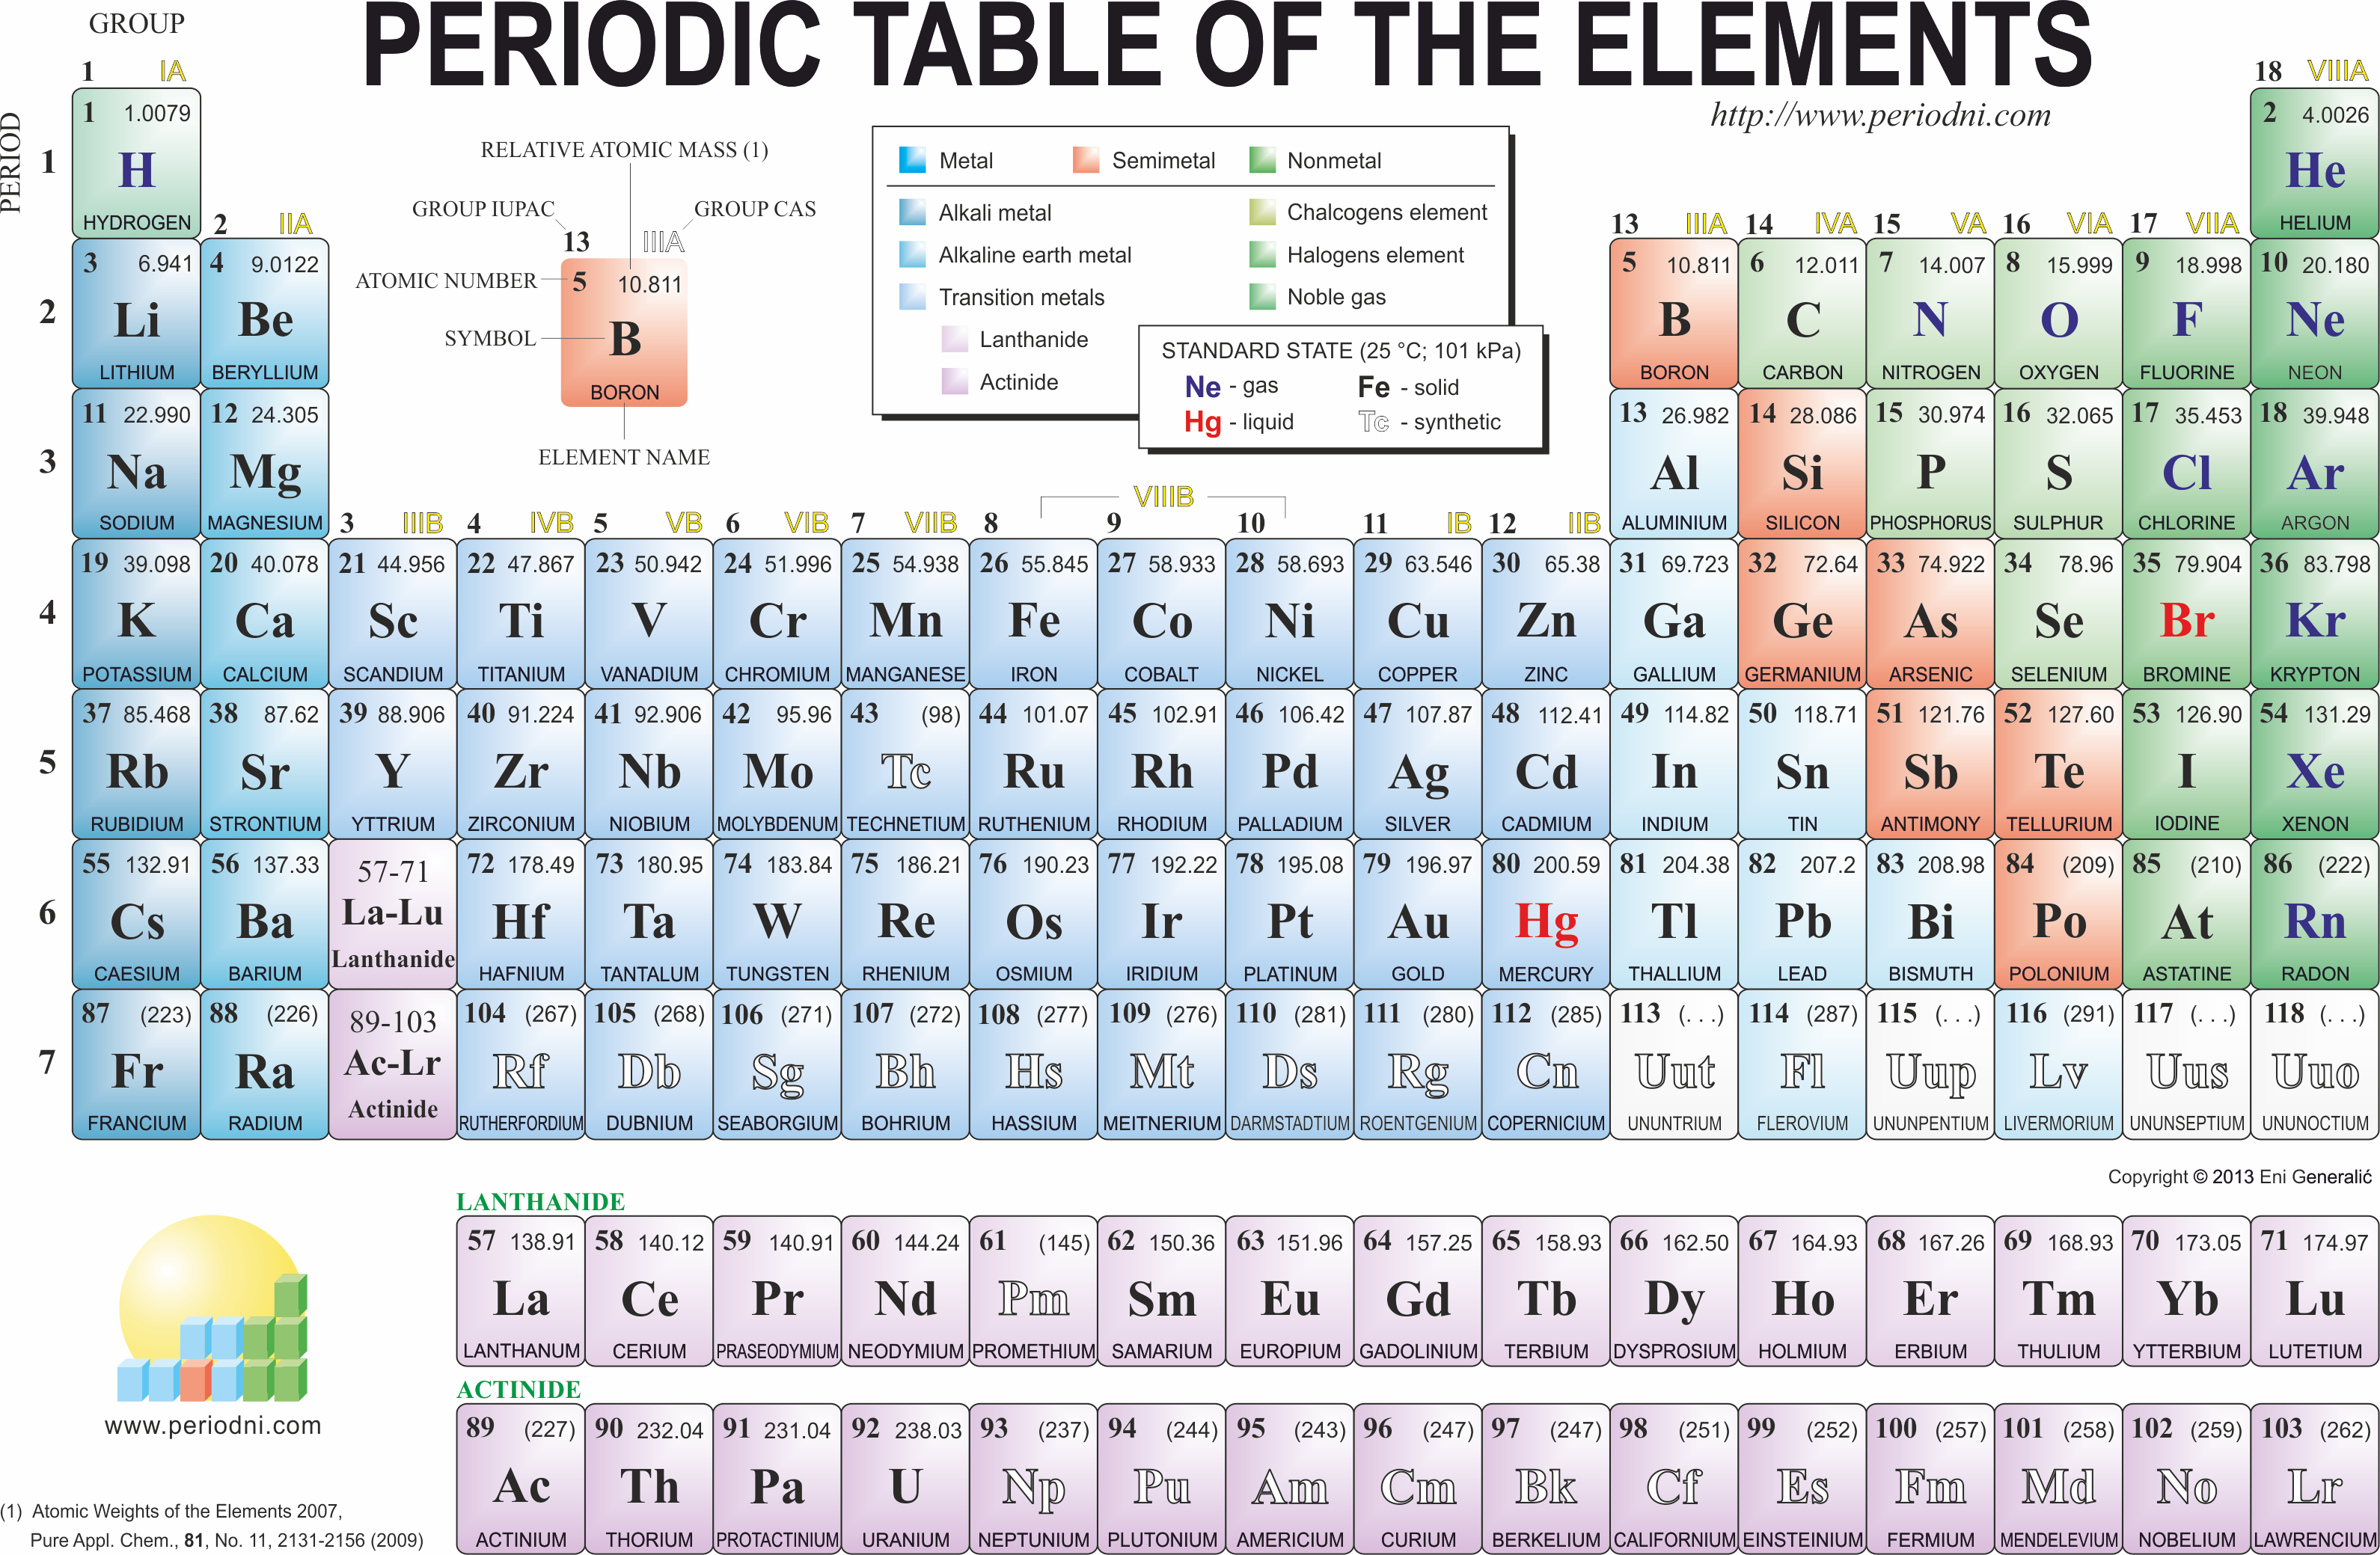 Periodic table of the elements chemistry dictionary for Periodic table